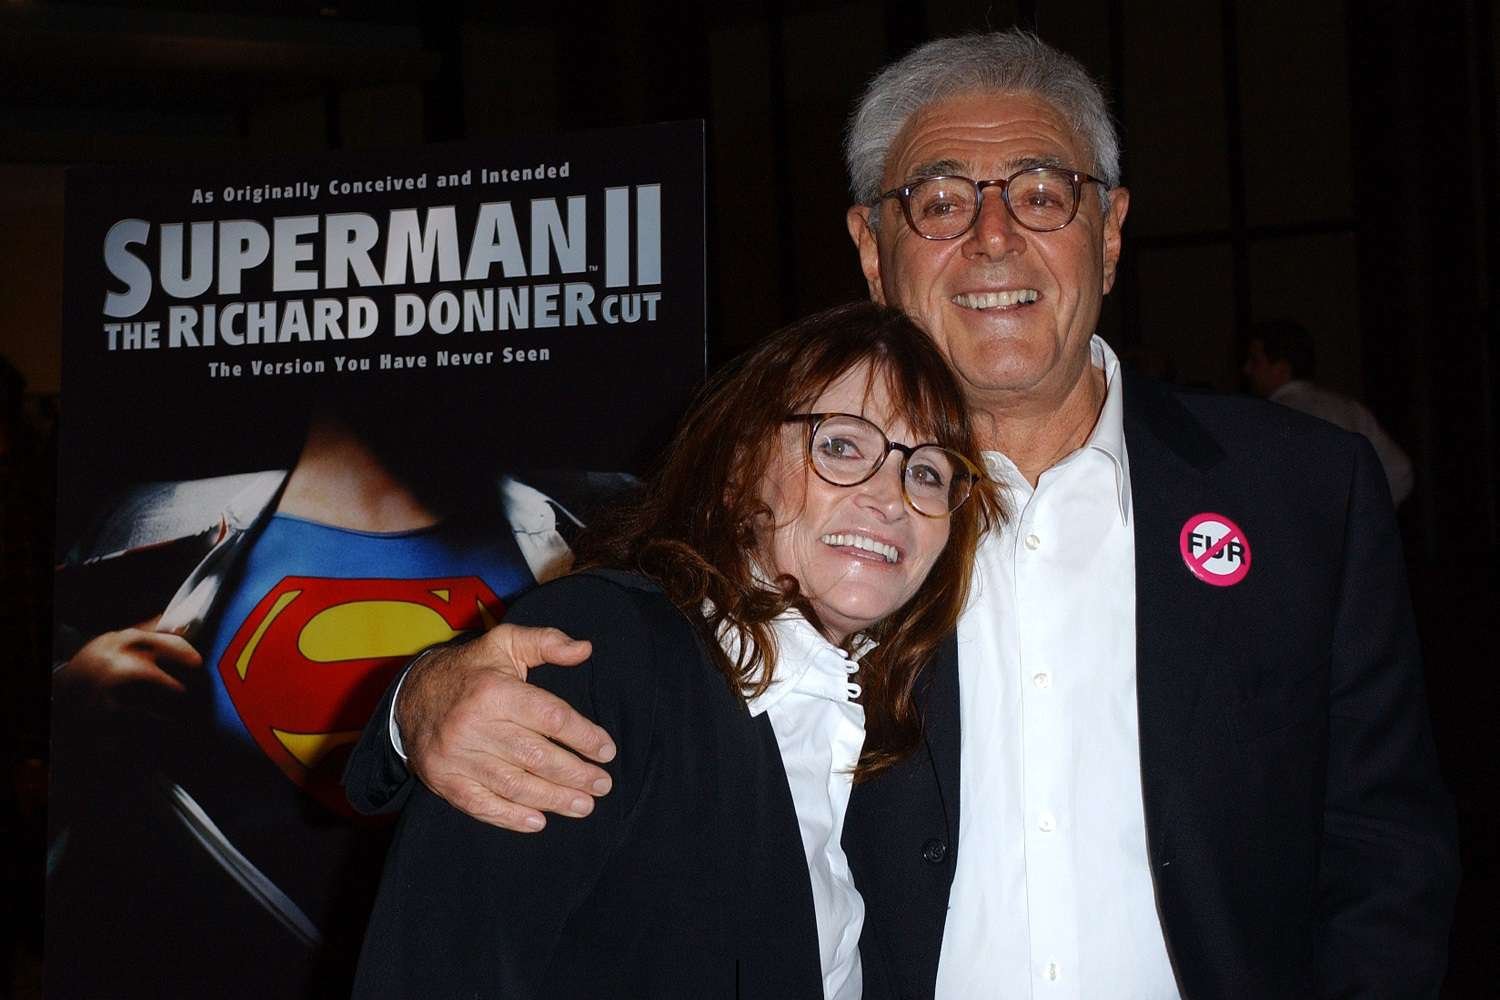 Actress Margot Kidder and director Richard Donner at the 2006 premiere of Superman II: The Richard Donner Cut